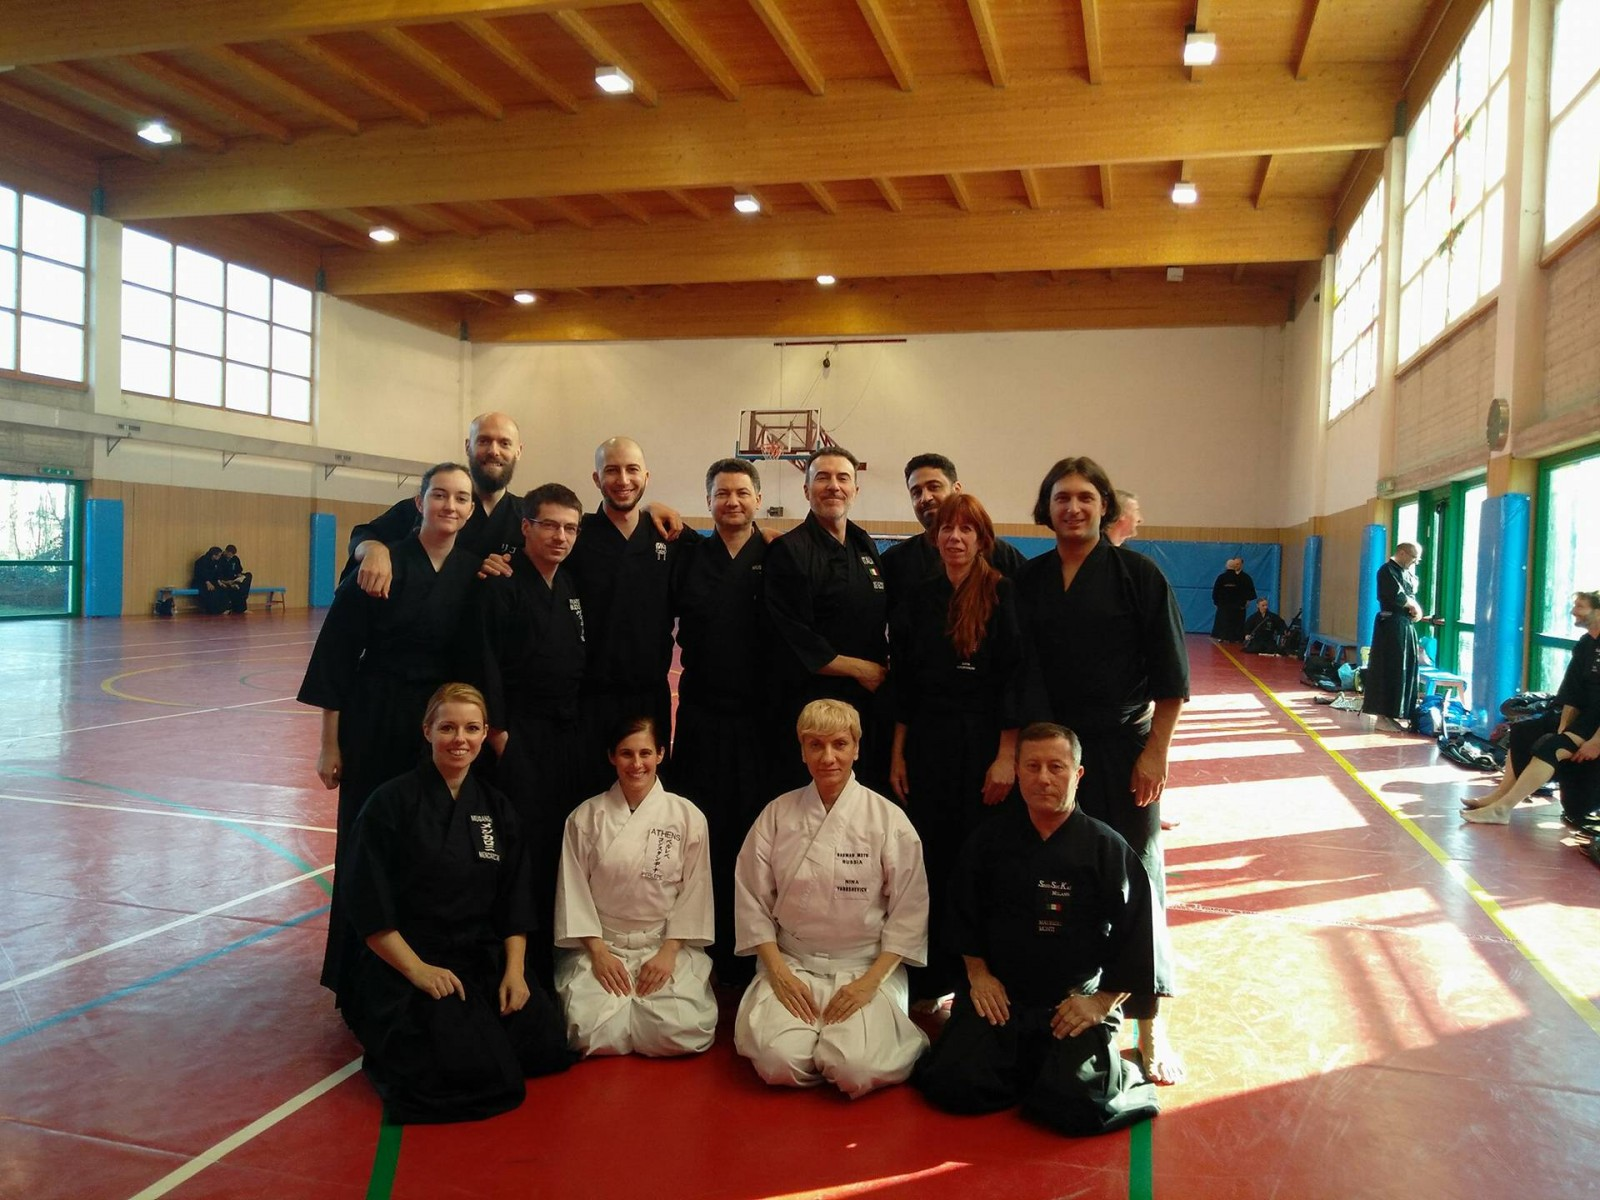 International Iaido Seminar in Carvico. Jan 26-28, 2018; Bergamo, Italy / Семинар по иайдо (техника владения традиционным японским мечом). Январь 2018, Бергамо, Италия.